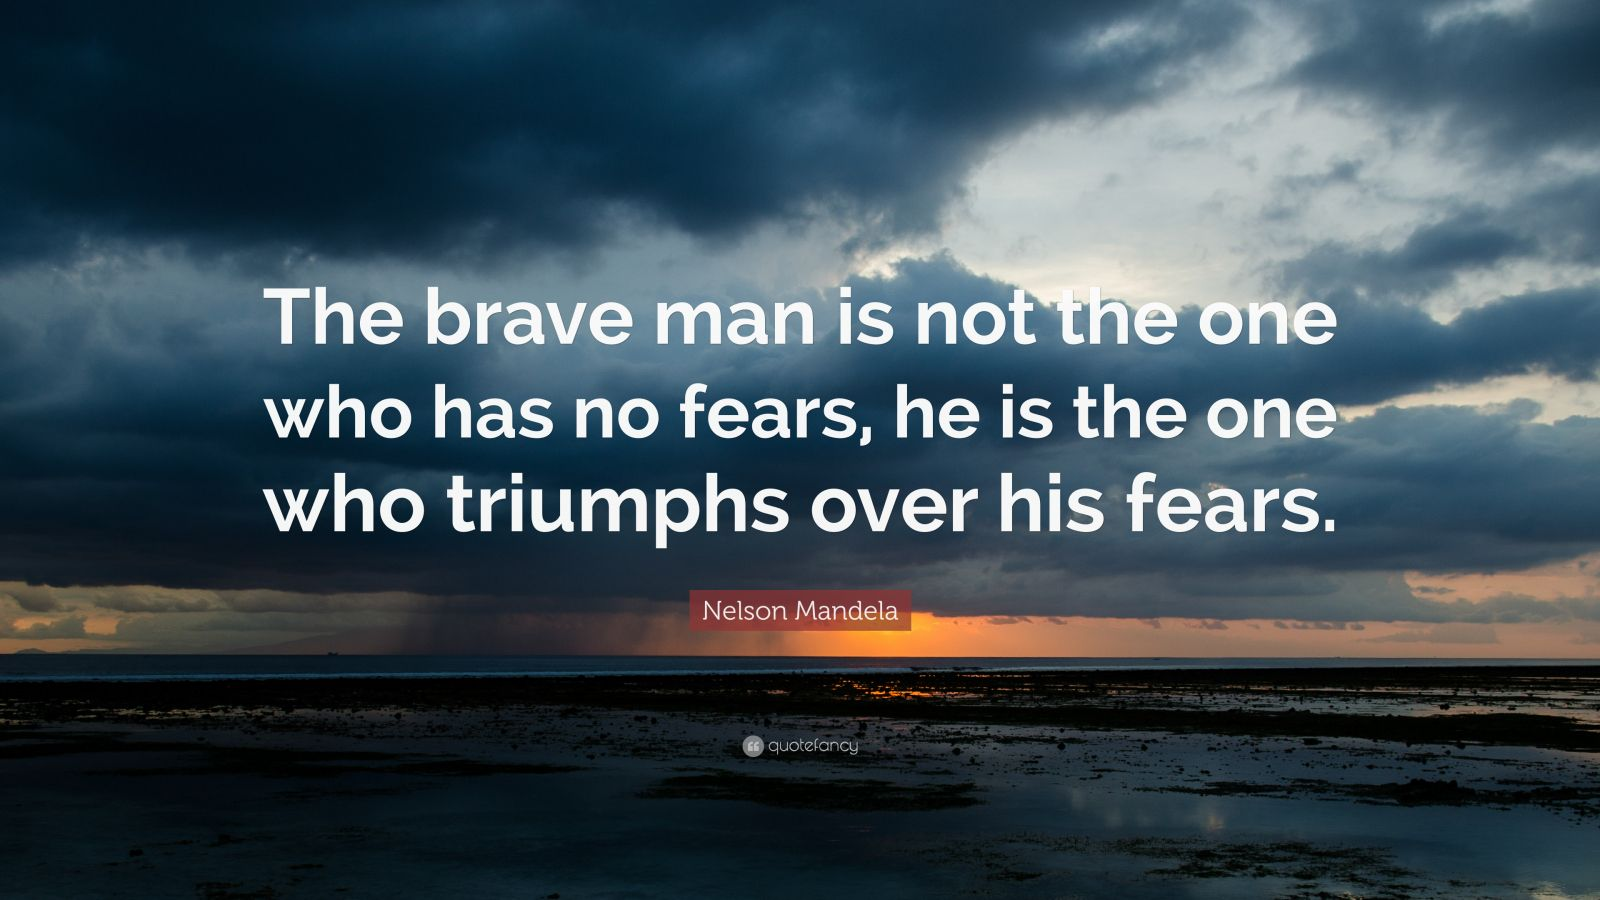 Napoleon Hill Quotes Wallpaper Nelson Mandela Quote The Brave Man Is Not The One Who